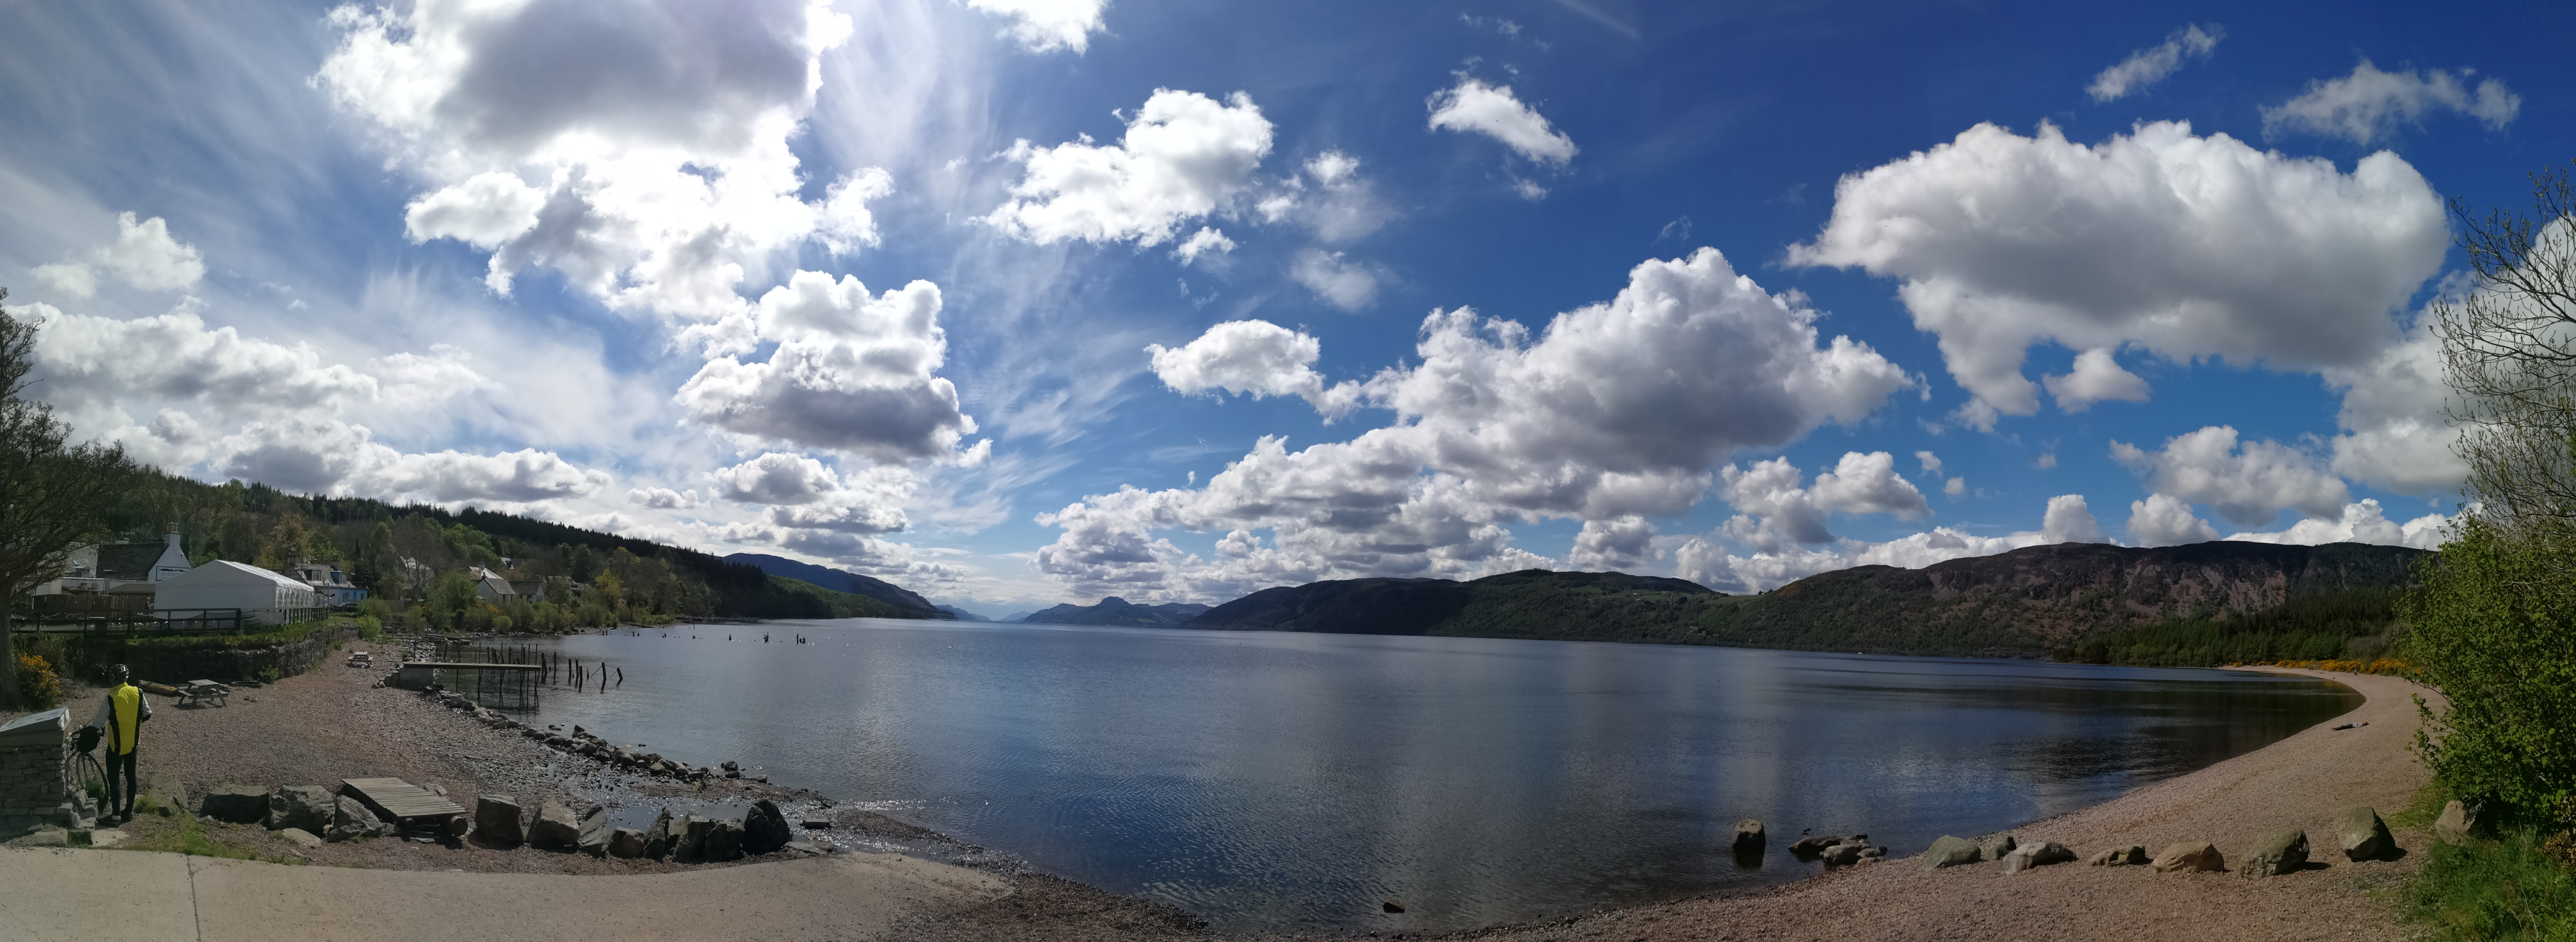 Loch ness as seen from the nessie hunters van.